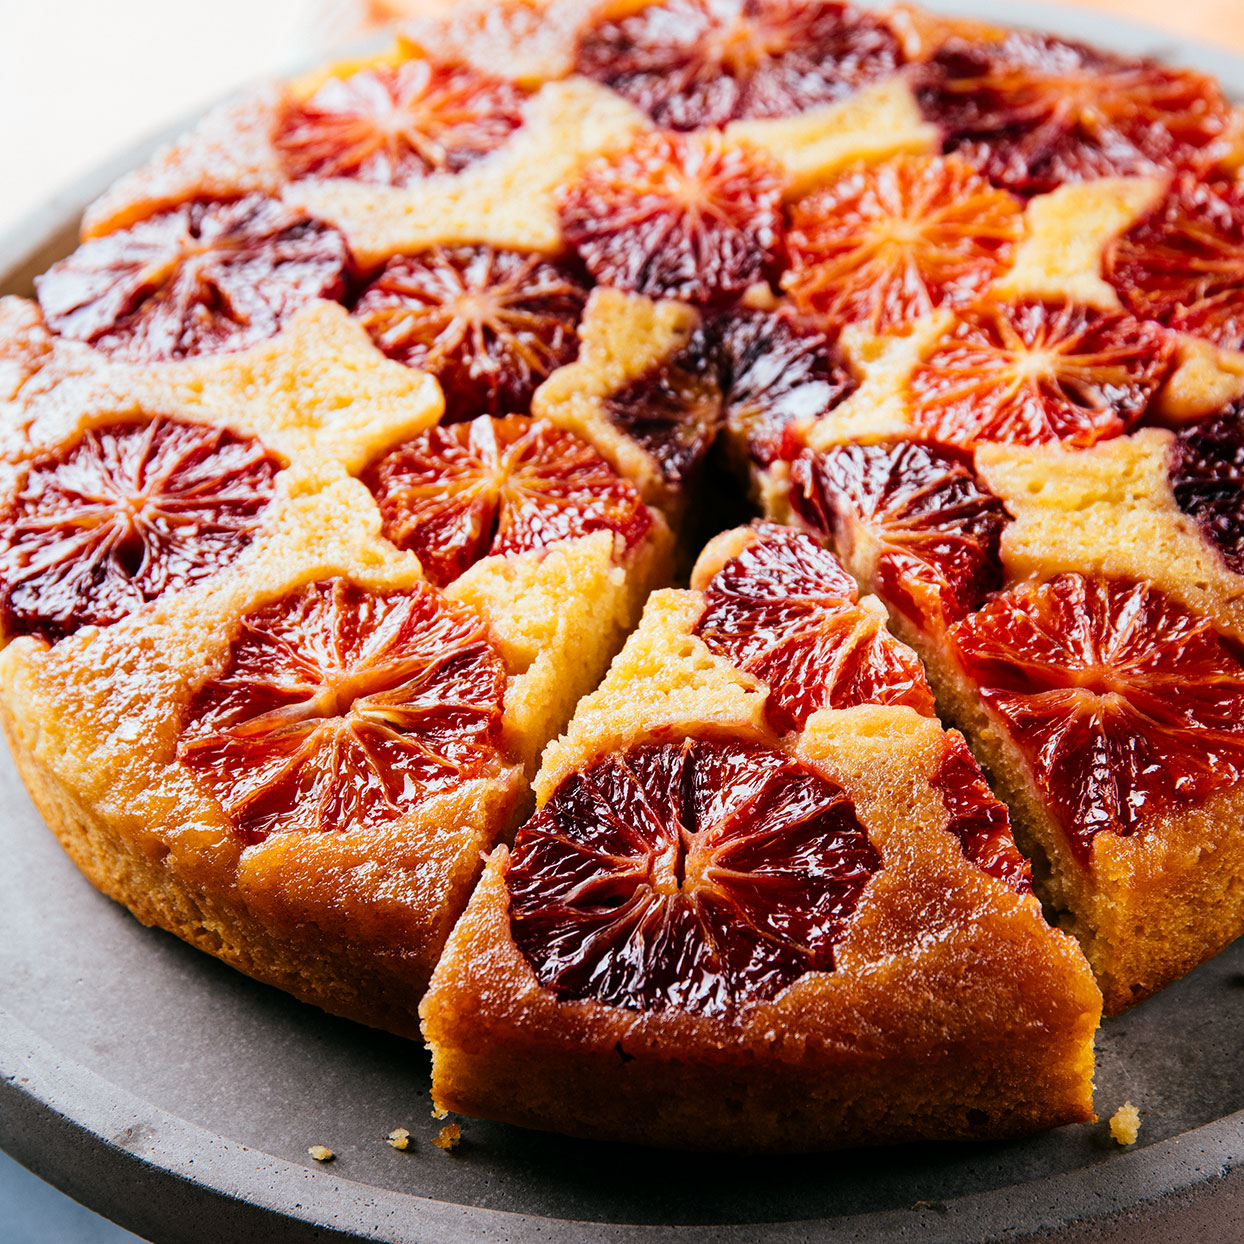 Upside-down cakes have a built-in wow factor with a layer of glacéed-looking fruit. This cake includes almond flour to give it richness and added moisture, plus zest for a more intense layer of blood orange flavor.